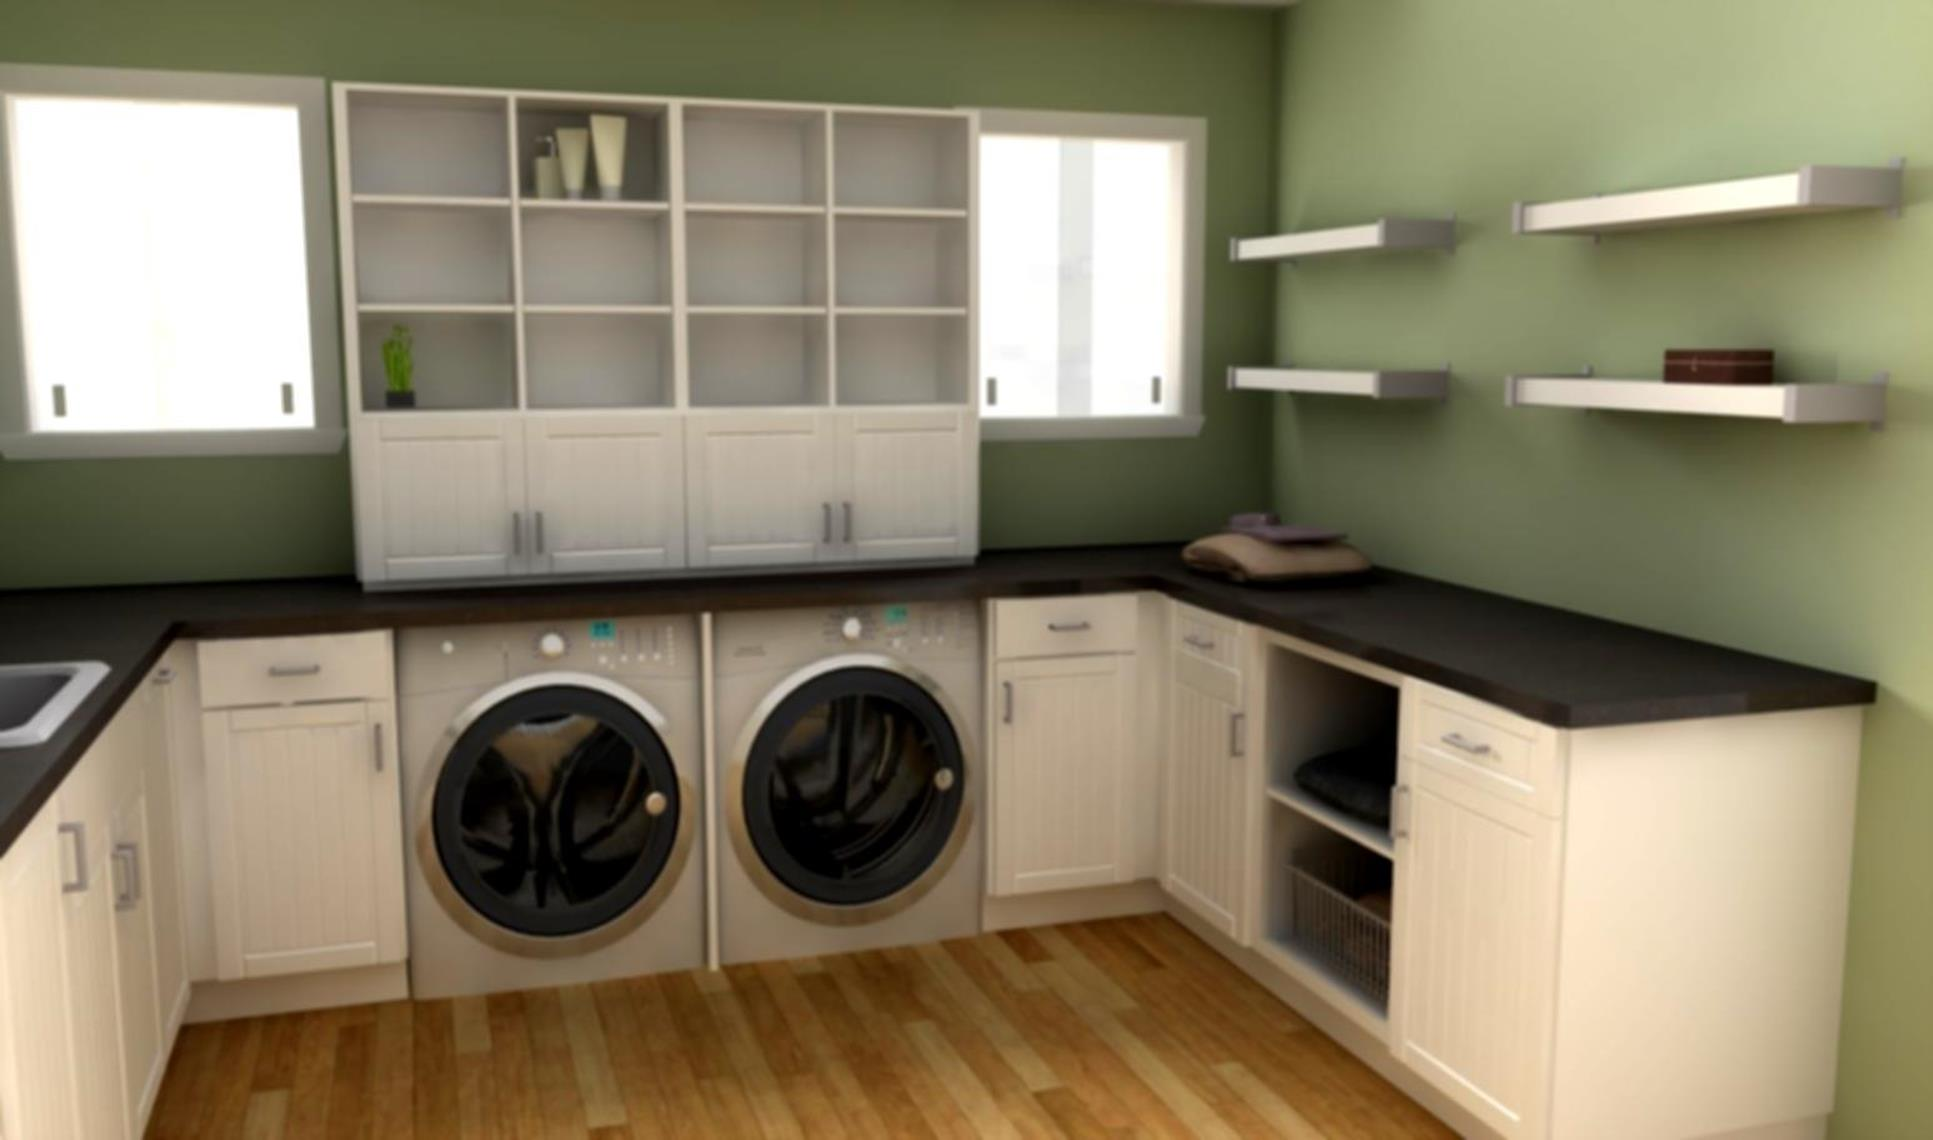 Best Cheap IKEA Cabinets Laundry Room Storage Ideas 18